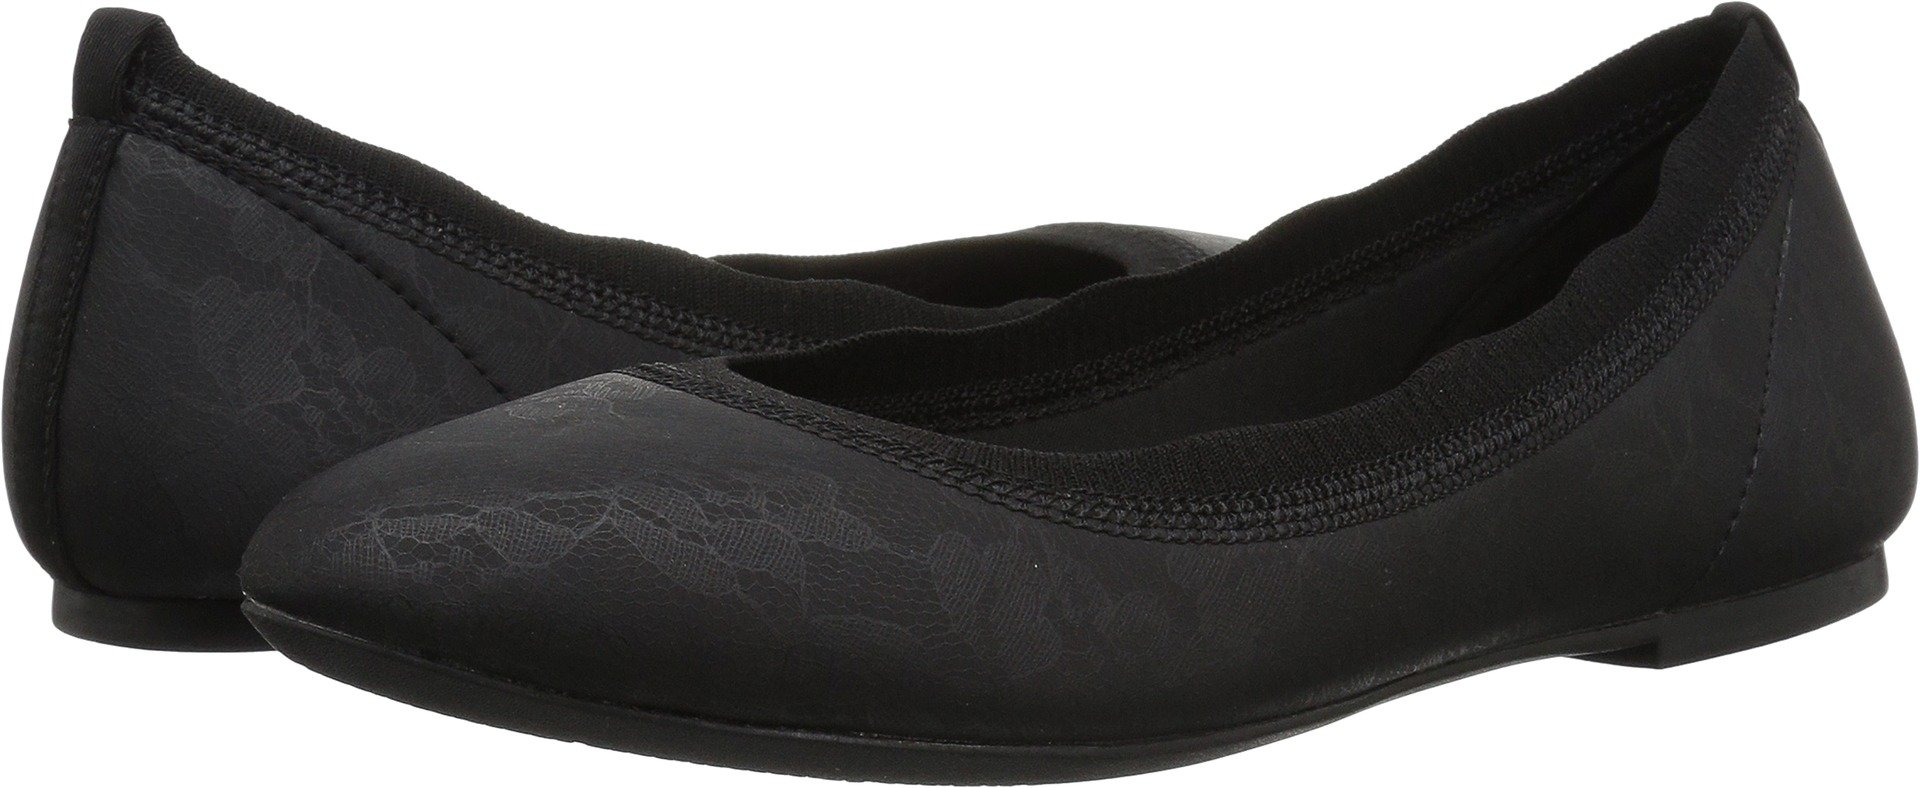 Skechers Women's Cleo Place Lace Printed Stretch Fabric Skimmer Ballet Flat, Black, 8.5 M US